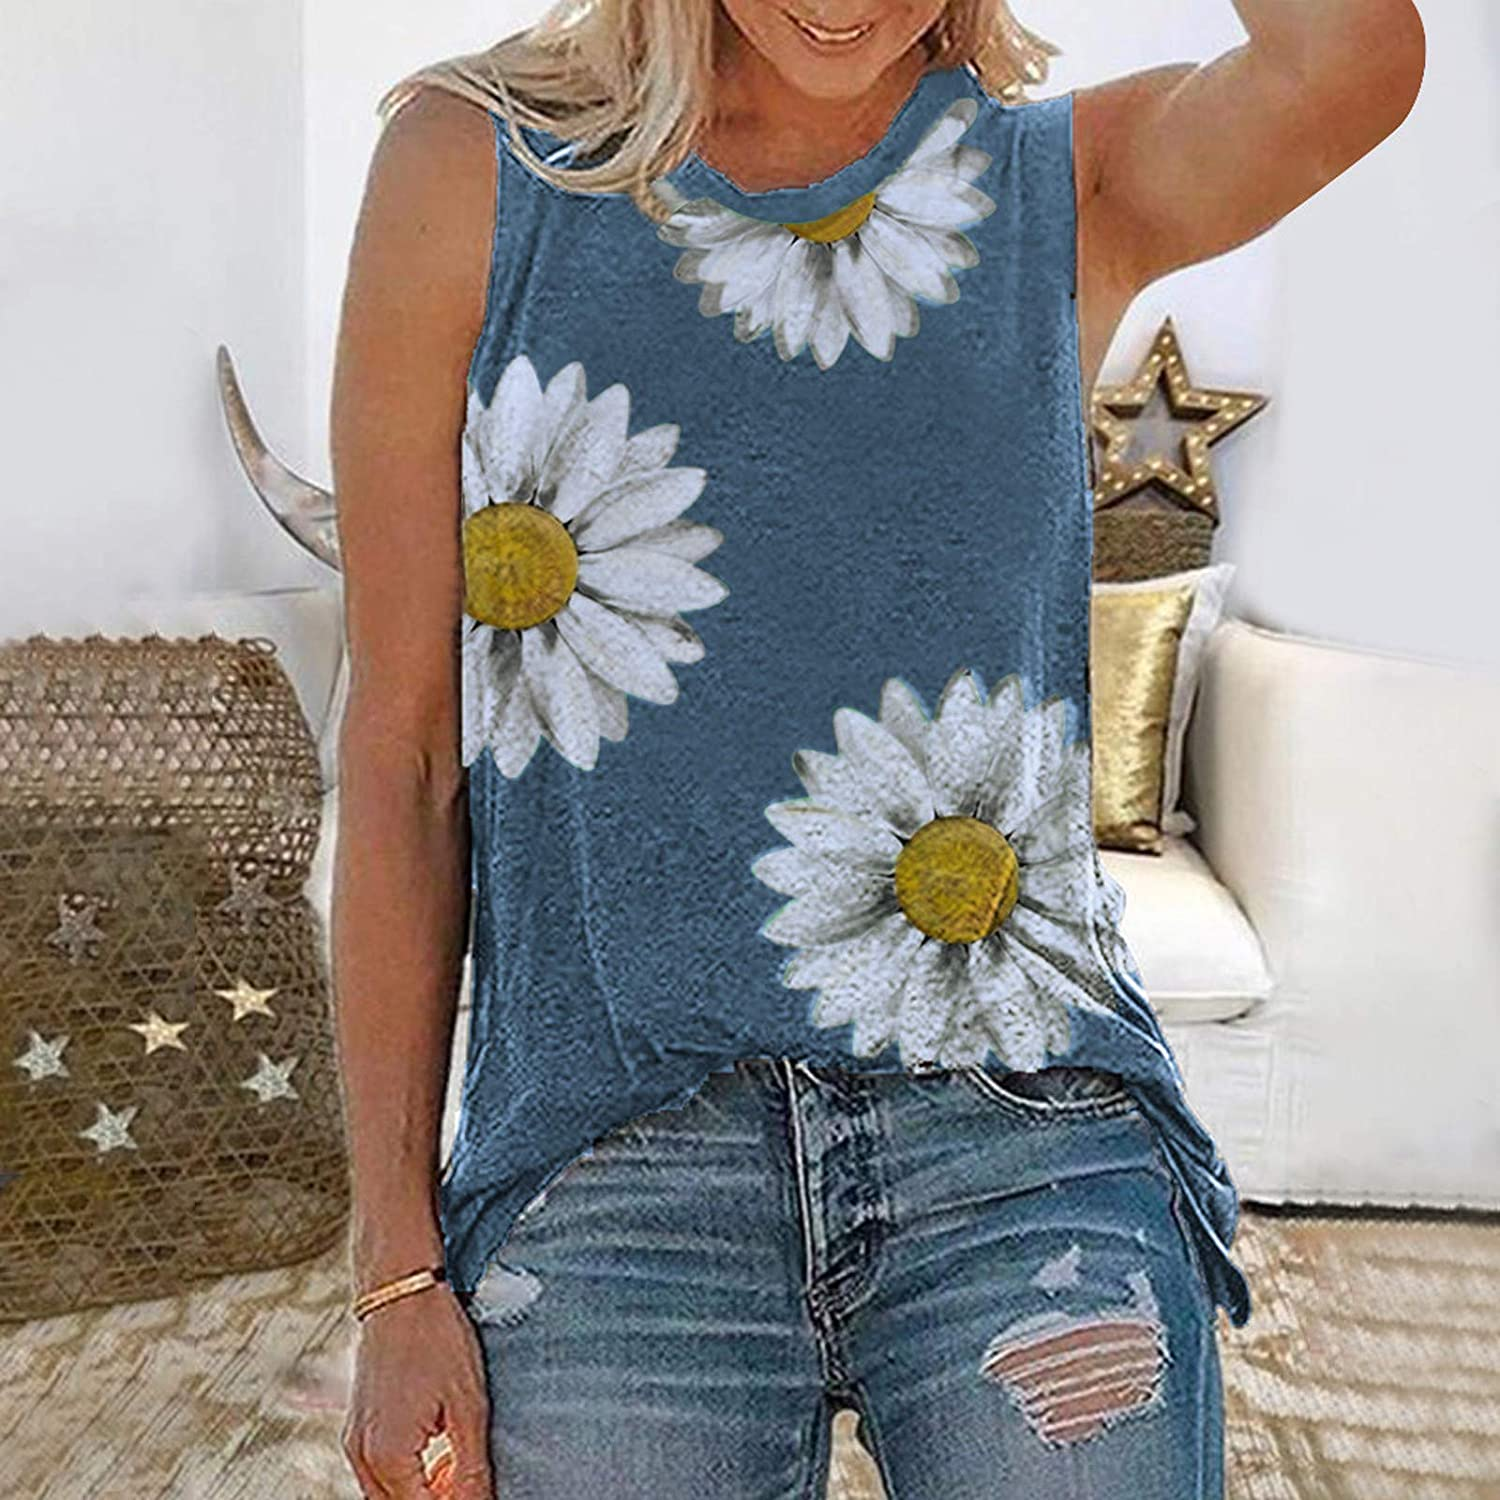 Sleeveless Tops for Women Loose Fit,Women Floral Print Tank Tops Casual Sunflower Workout Tanks Tops